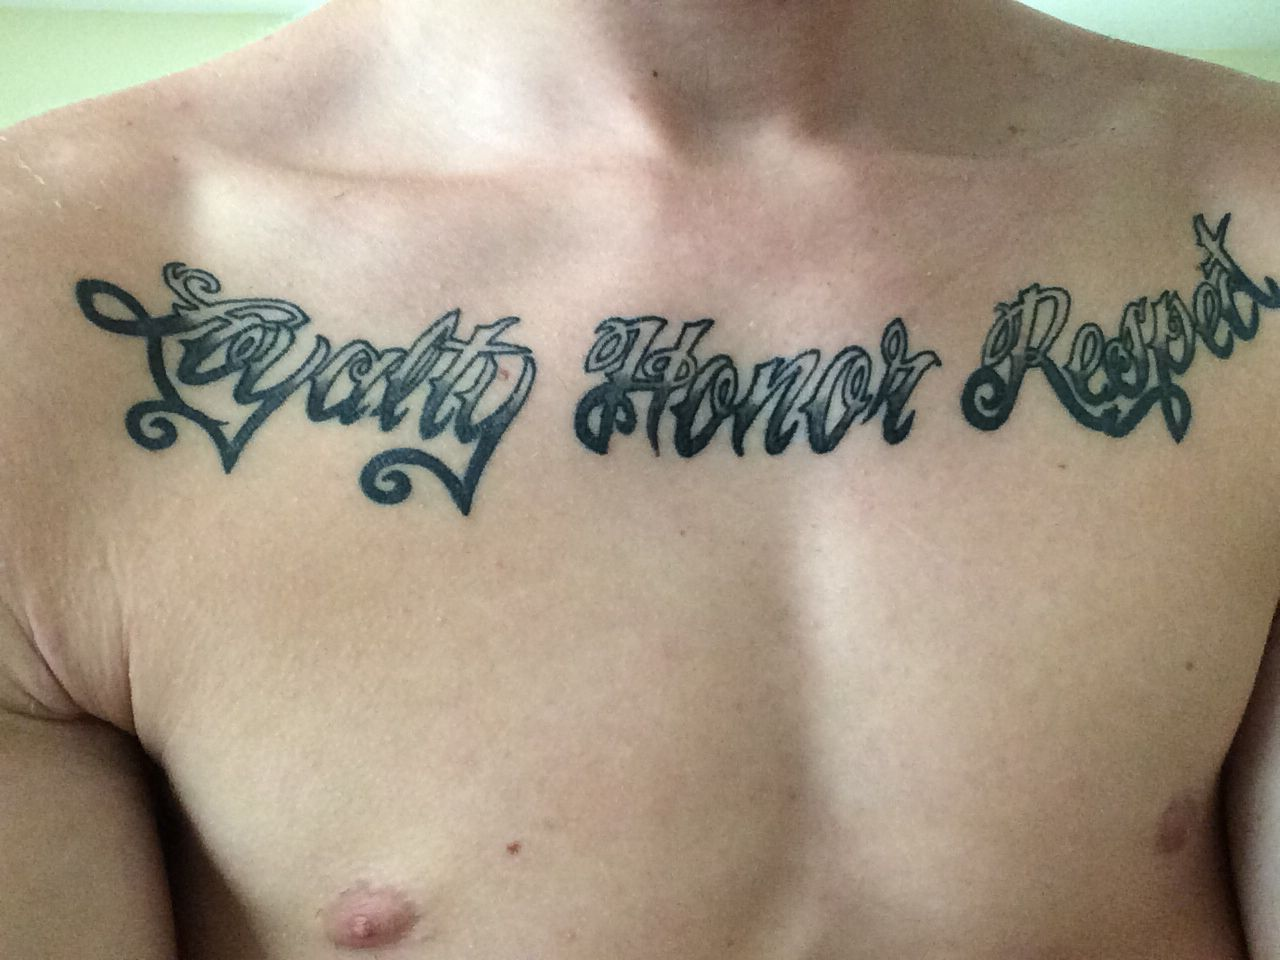 Tattoo Men Chest Loyalty Honor Respect Font Respect Tattoo Tattoos For Guys Tattoos